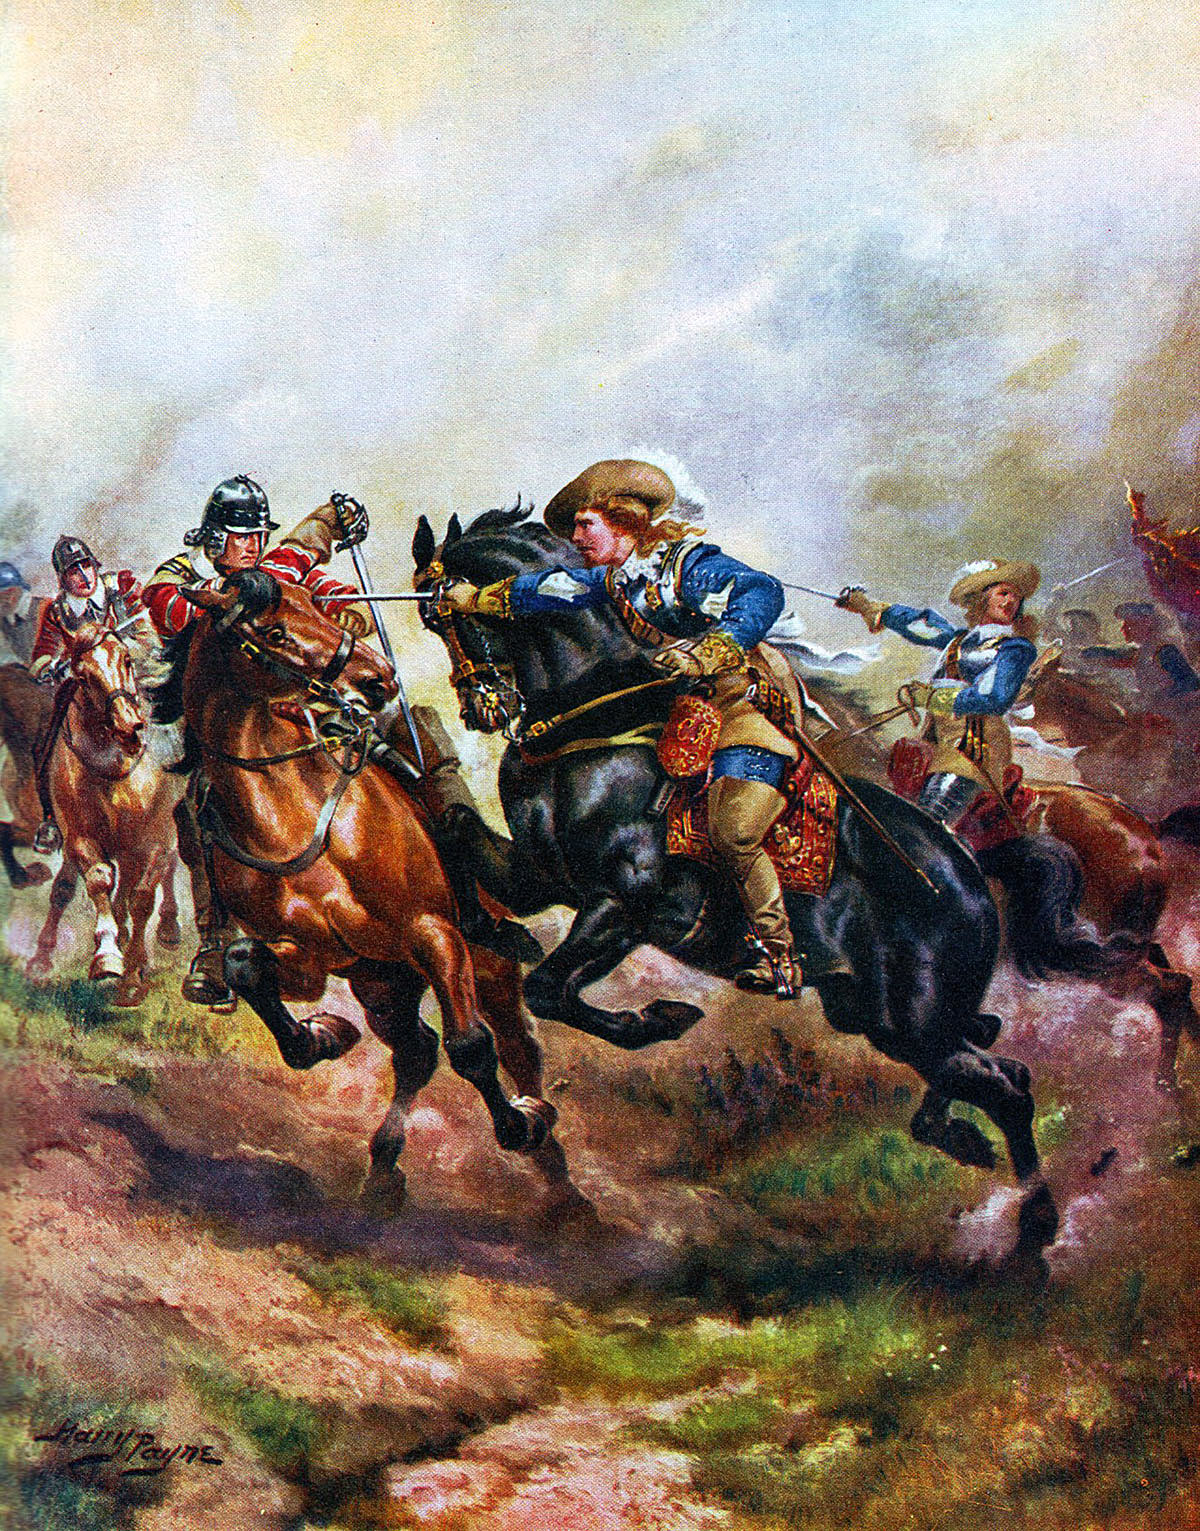 Royalist cavalry attacking at the Battle of Edgehill on 23rd October 1642 in the English Civil War: picture by Harry Payne